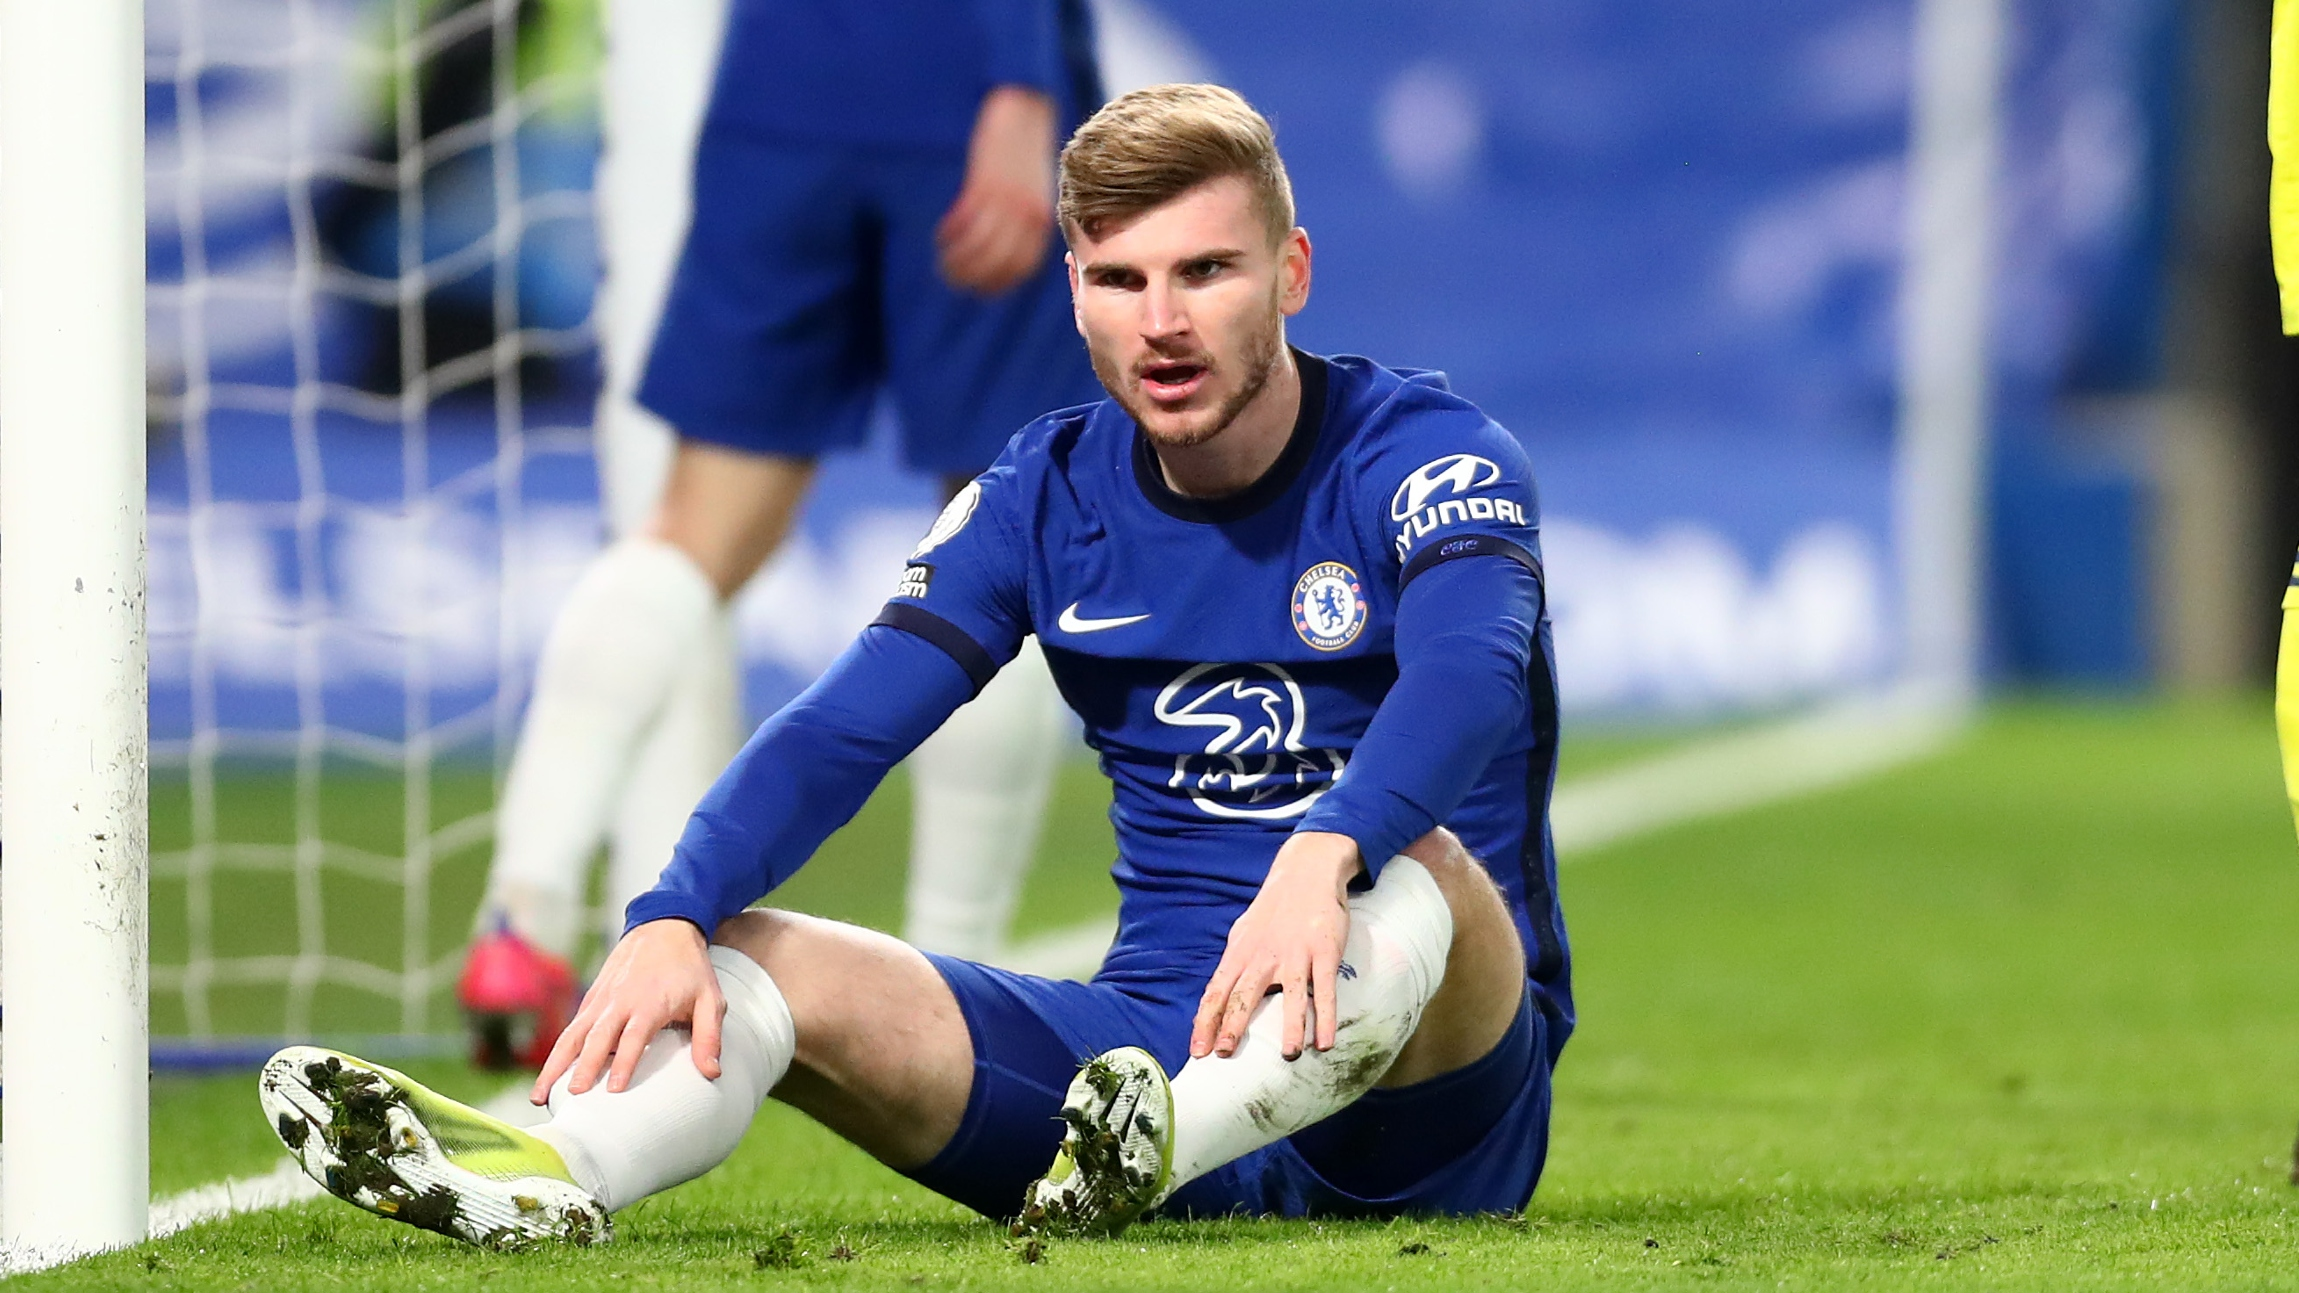 'You have to step away' - Werner admits struggles with media in first season at Chelsea